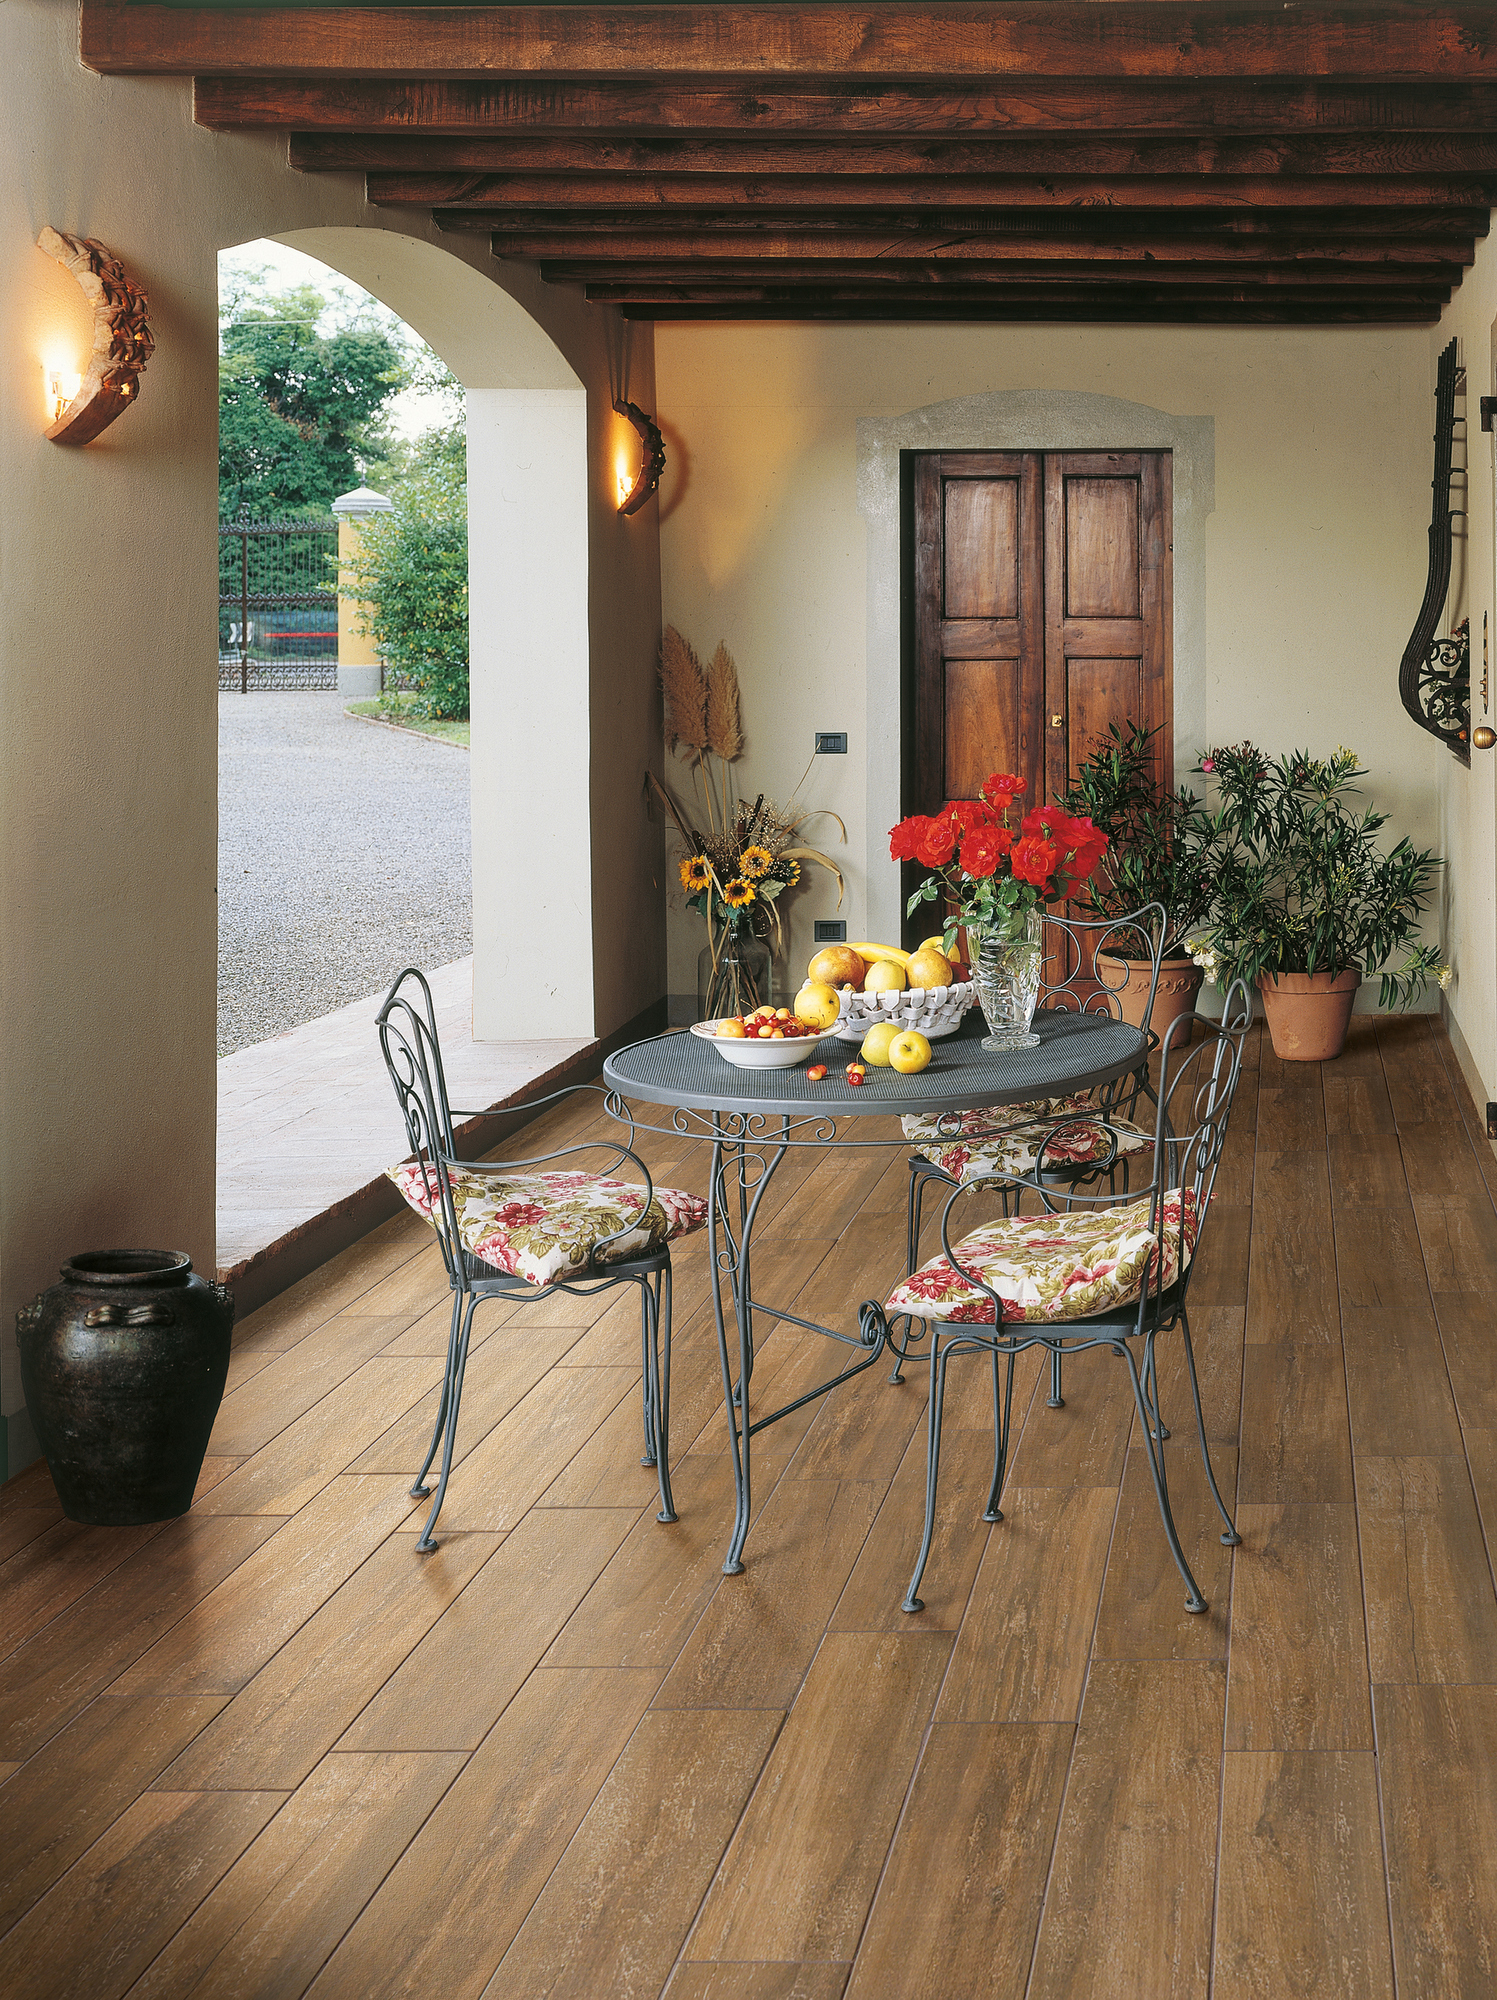 Faretti Color Legno : Faretti color legno fari da esterno whyled by ...